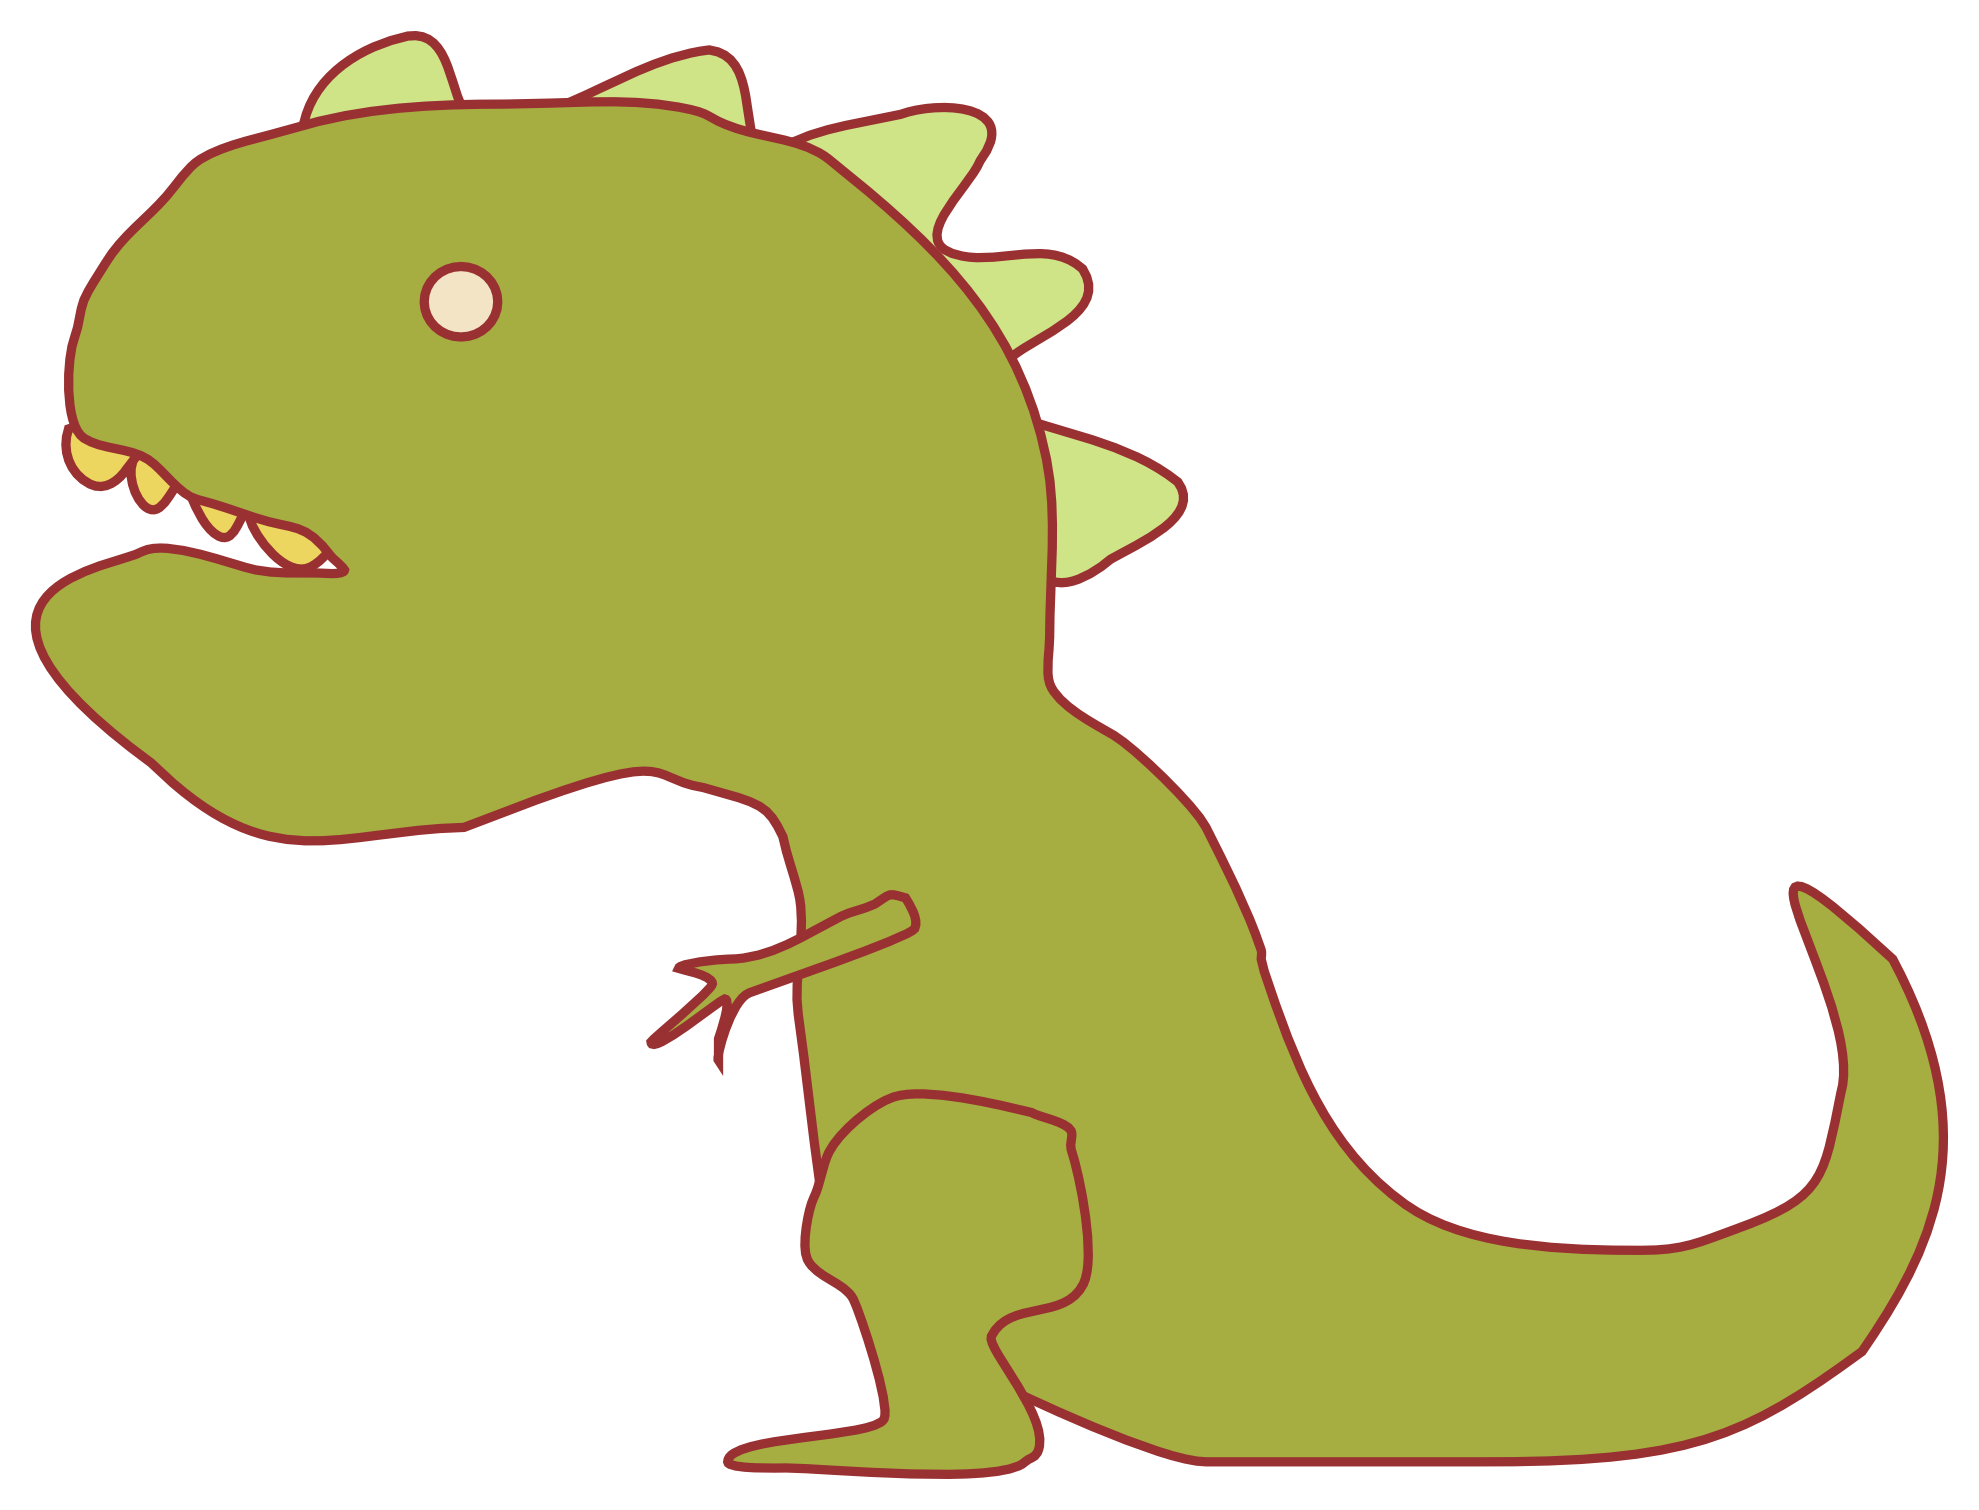 trex%20clipart%20black%20and%20white